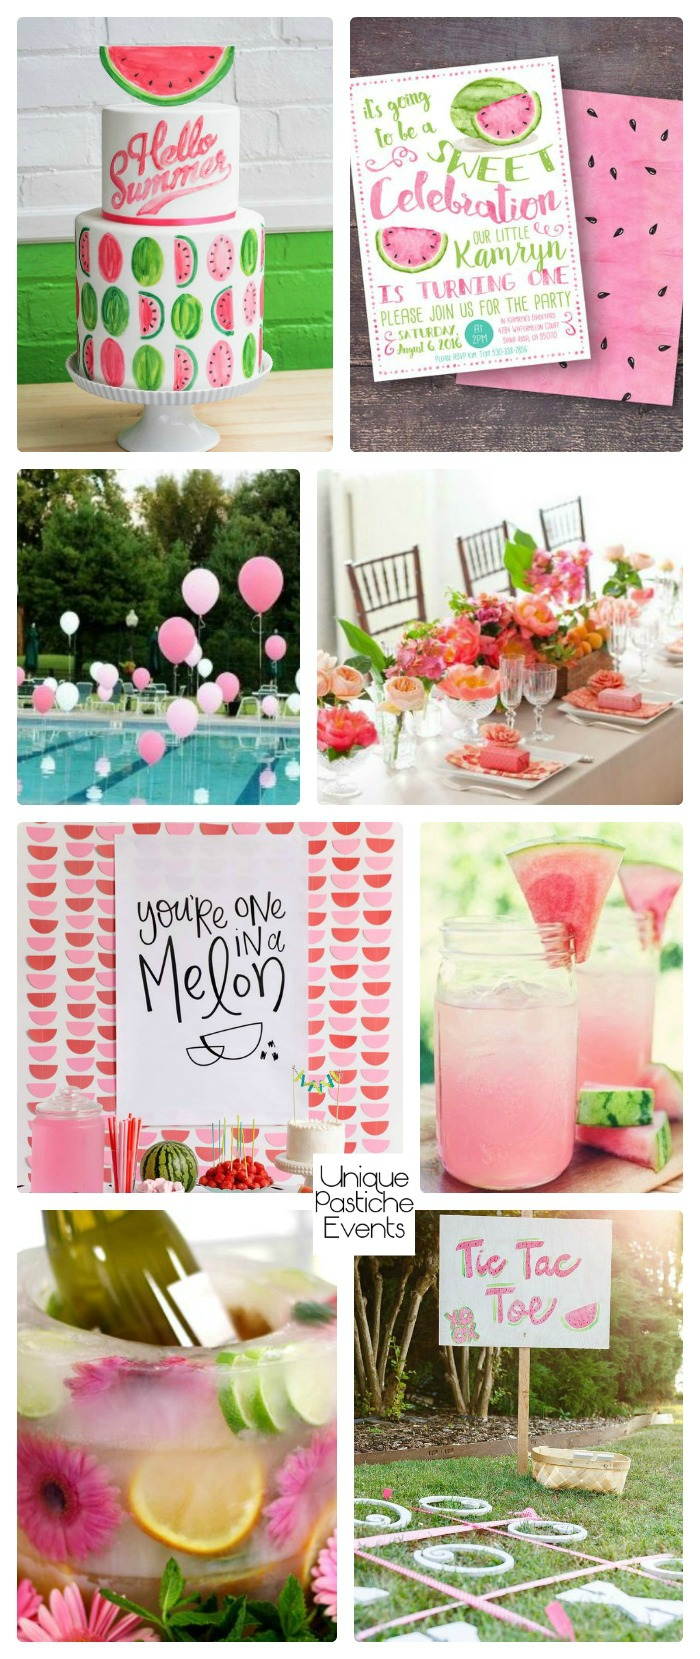 Summertime Watermelon Party Ideas Get all the details for this summer inspired party idea board with links to each element on the blog: https://uniquepasticheevents.com/2016/08/03/summertime-watermelon-party-ideas/